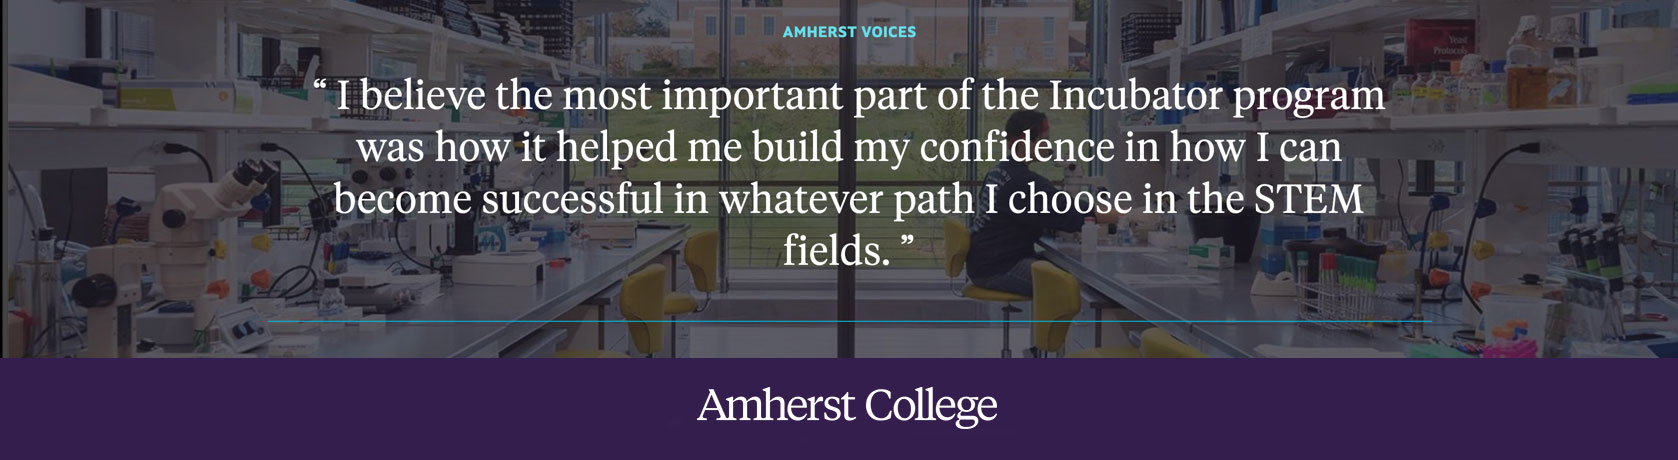 A quote about the Incubator Program at Amherst College